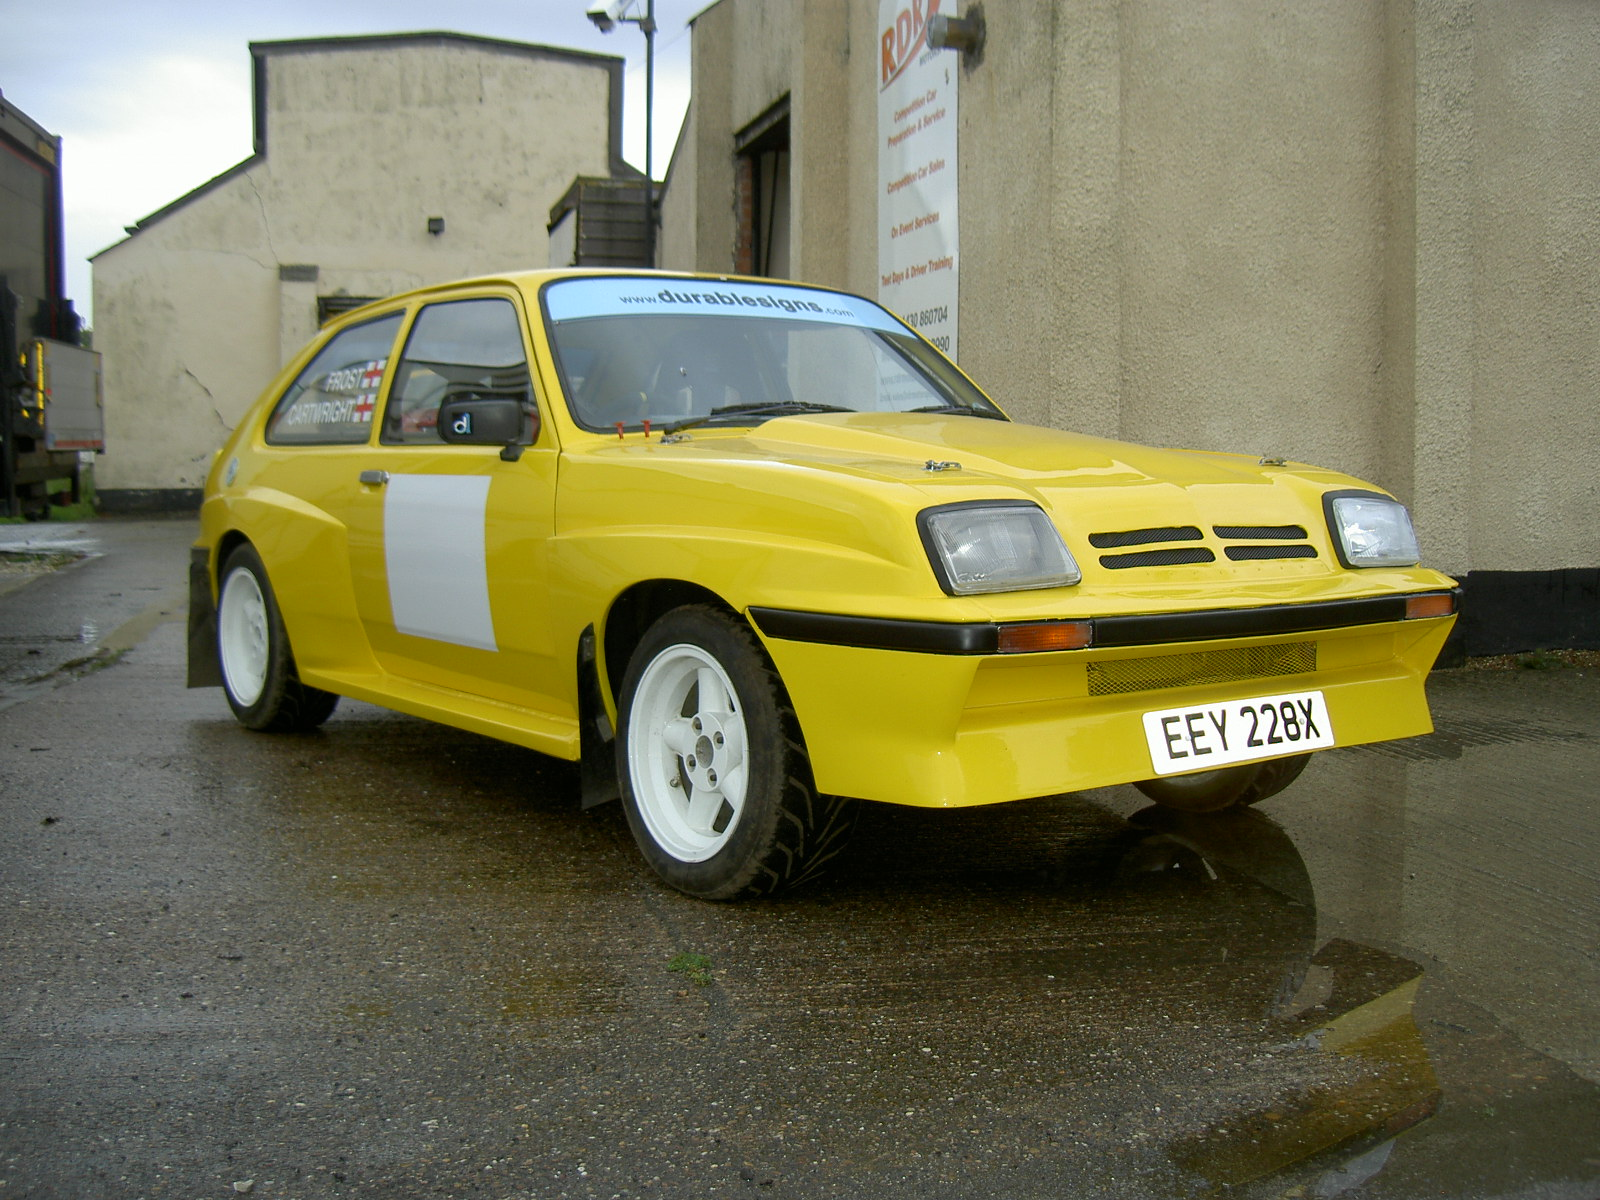 vauxhall chevette hsr tarmac spec rally for sale uk vauxhall chevette hsr tarmac spec